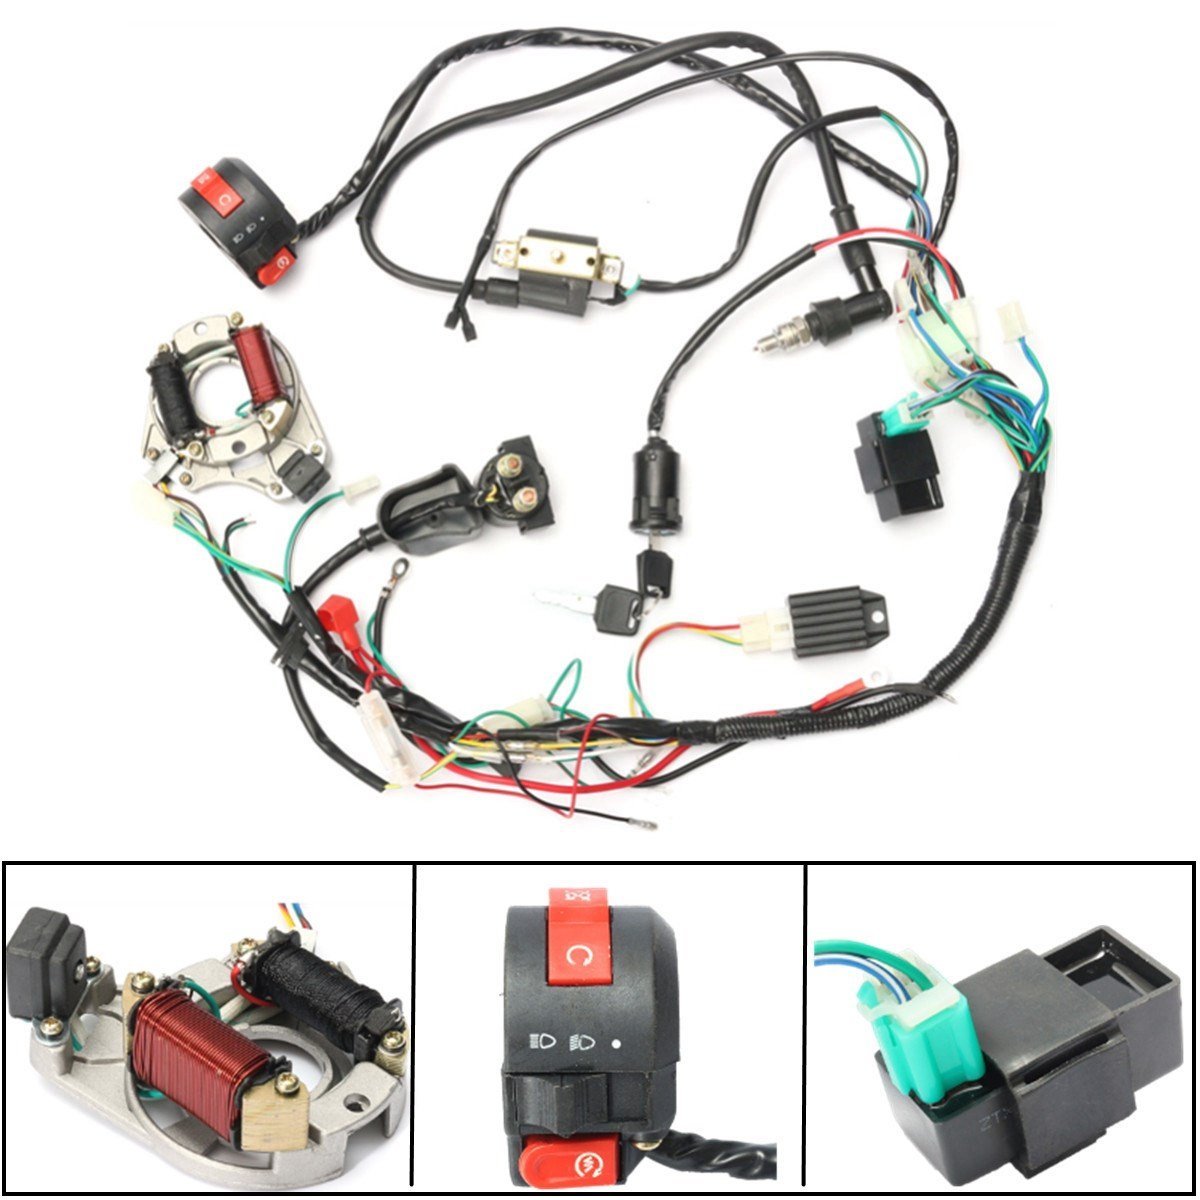 Wonderful Wire Assembly Hb Photos - Electrical Wiring Diagram ...